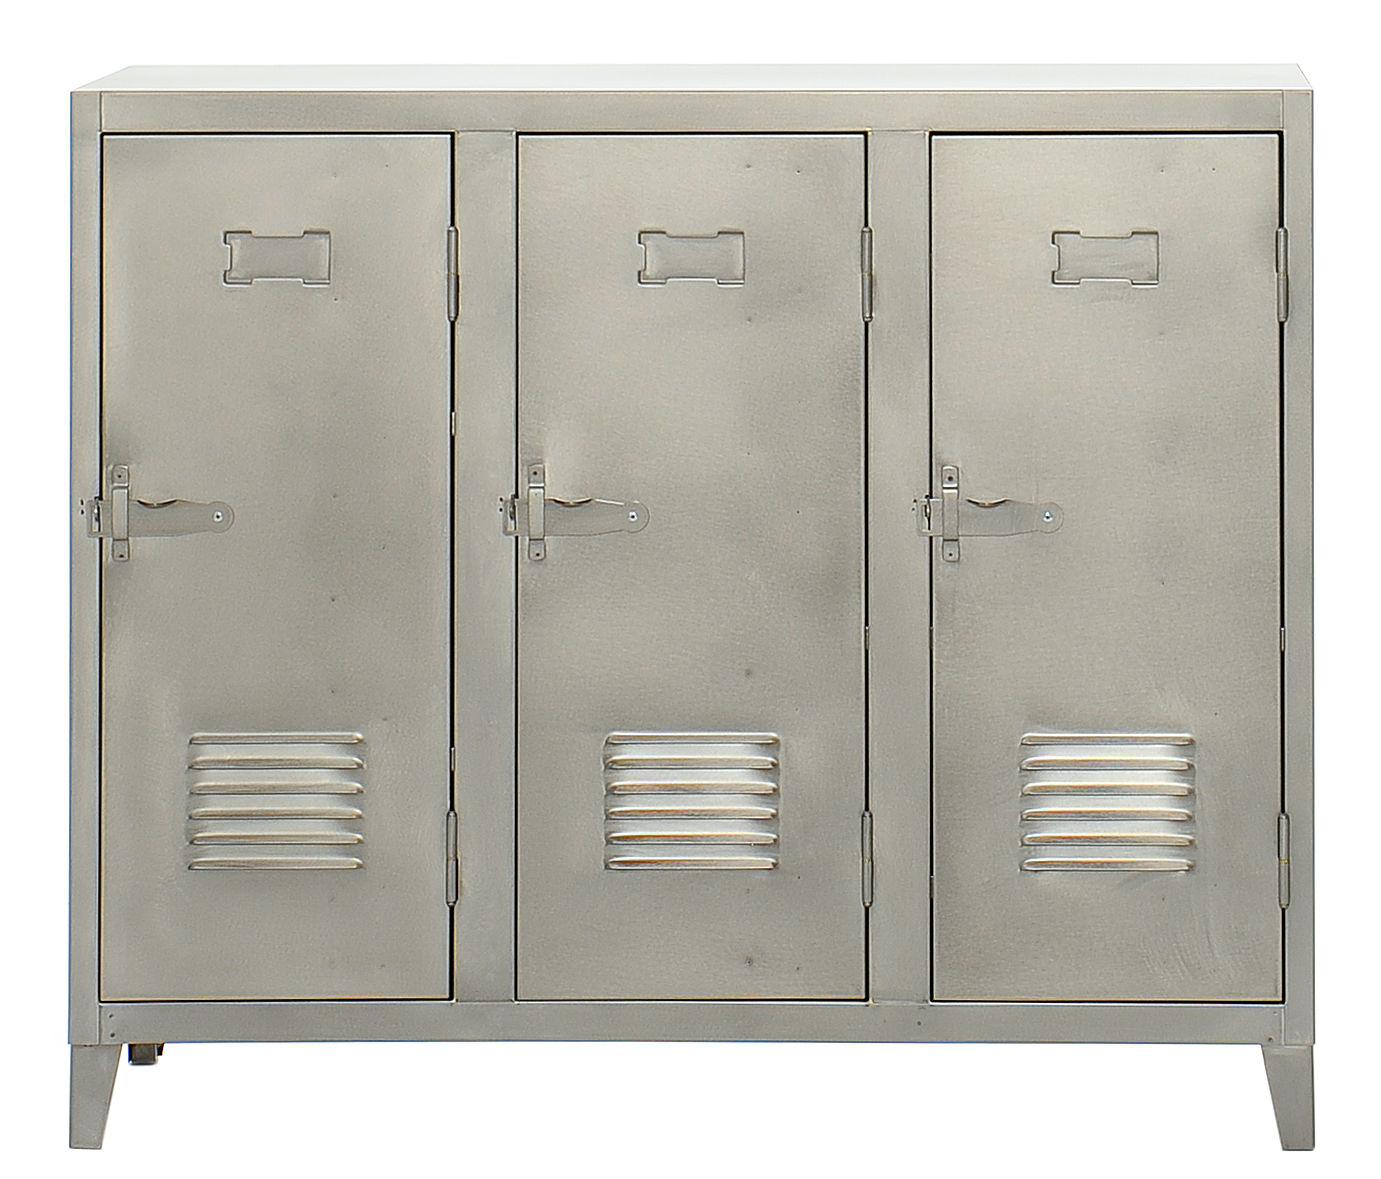 Furniture - Shelves & Storage Furniture - Vestiaire bas Storage by Tolix - Satin steel - Matt varnish raw steel